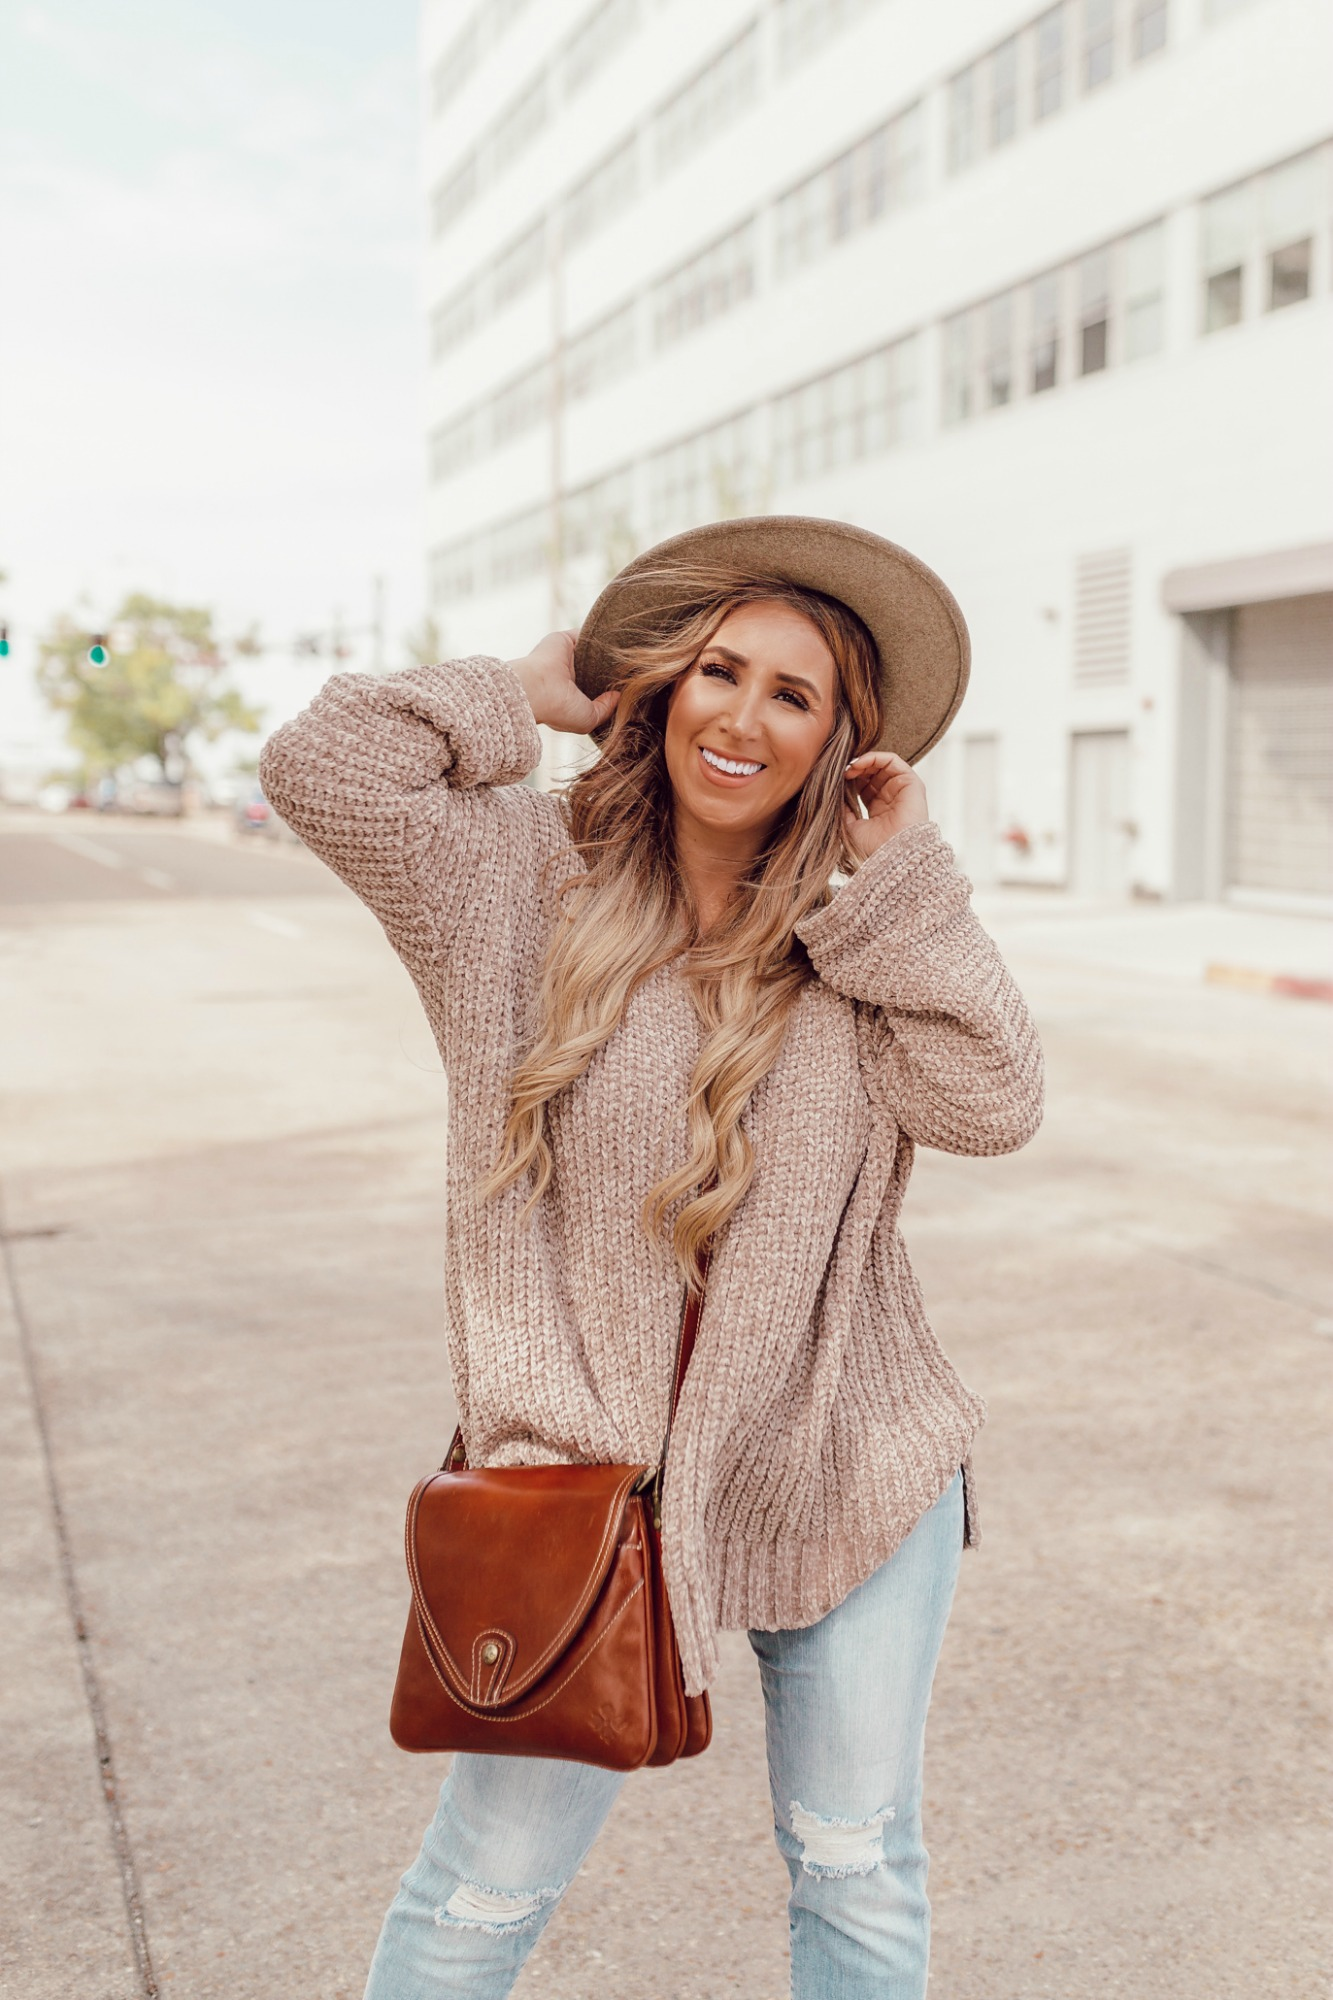 Fall outfit ideas for women on JanuaryHart.com